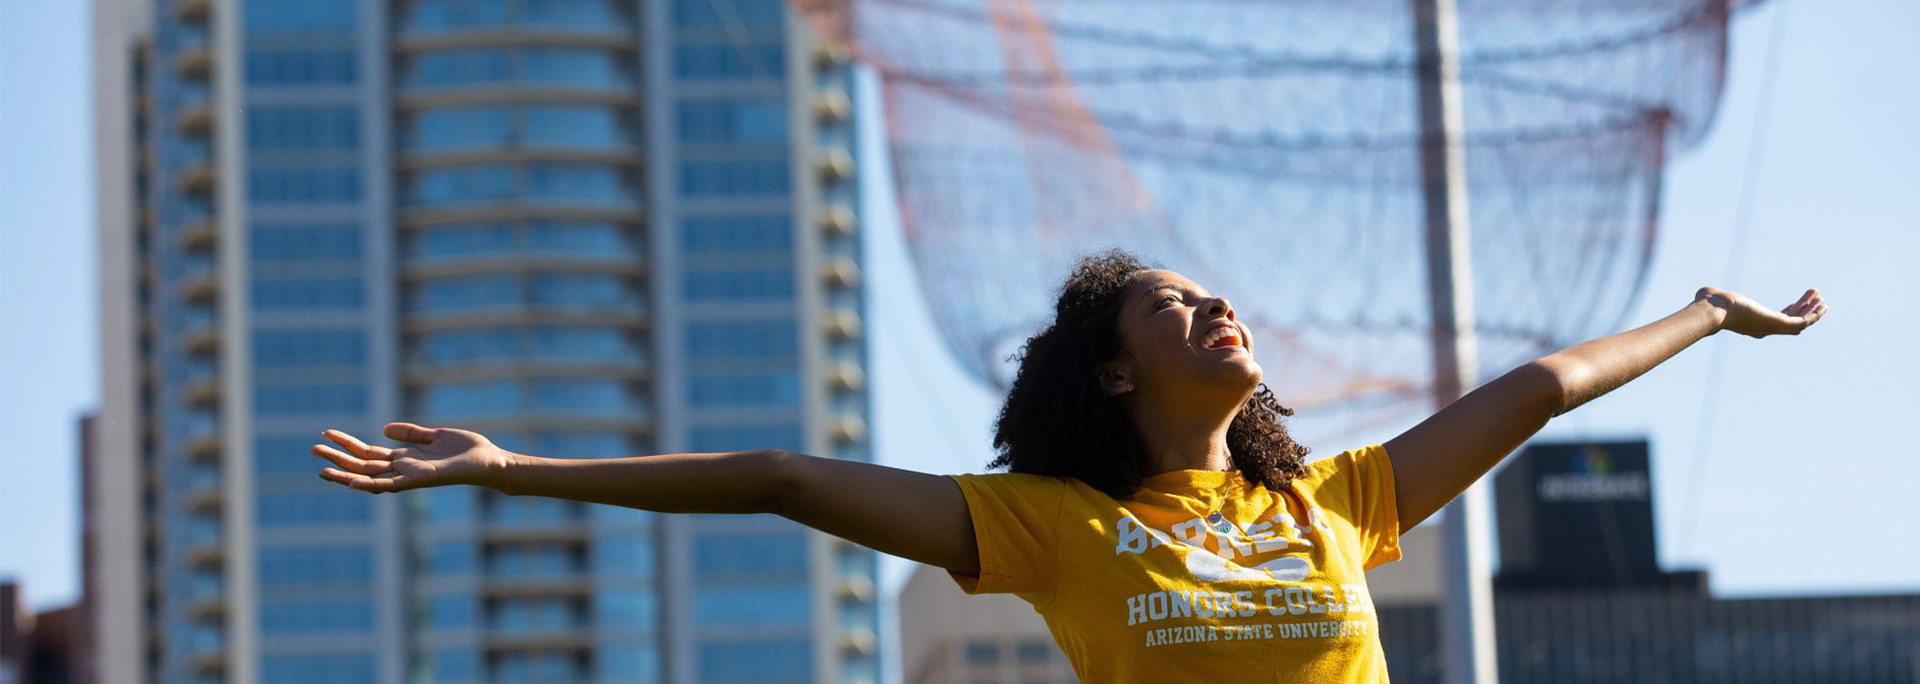 An ASU student stands with their arms out in Civic Space Park.